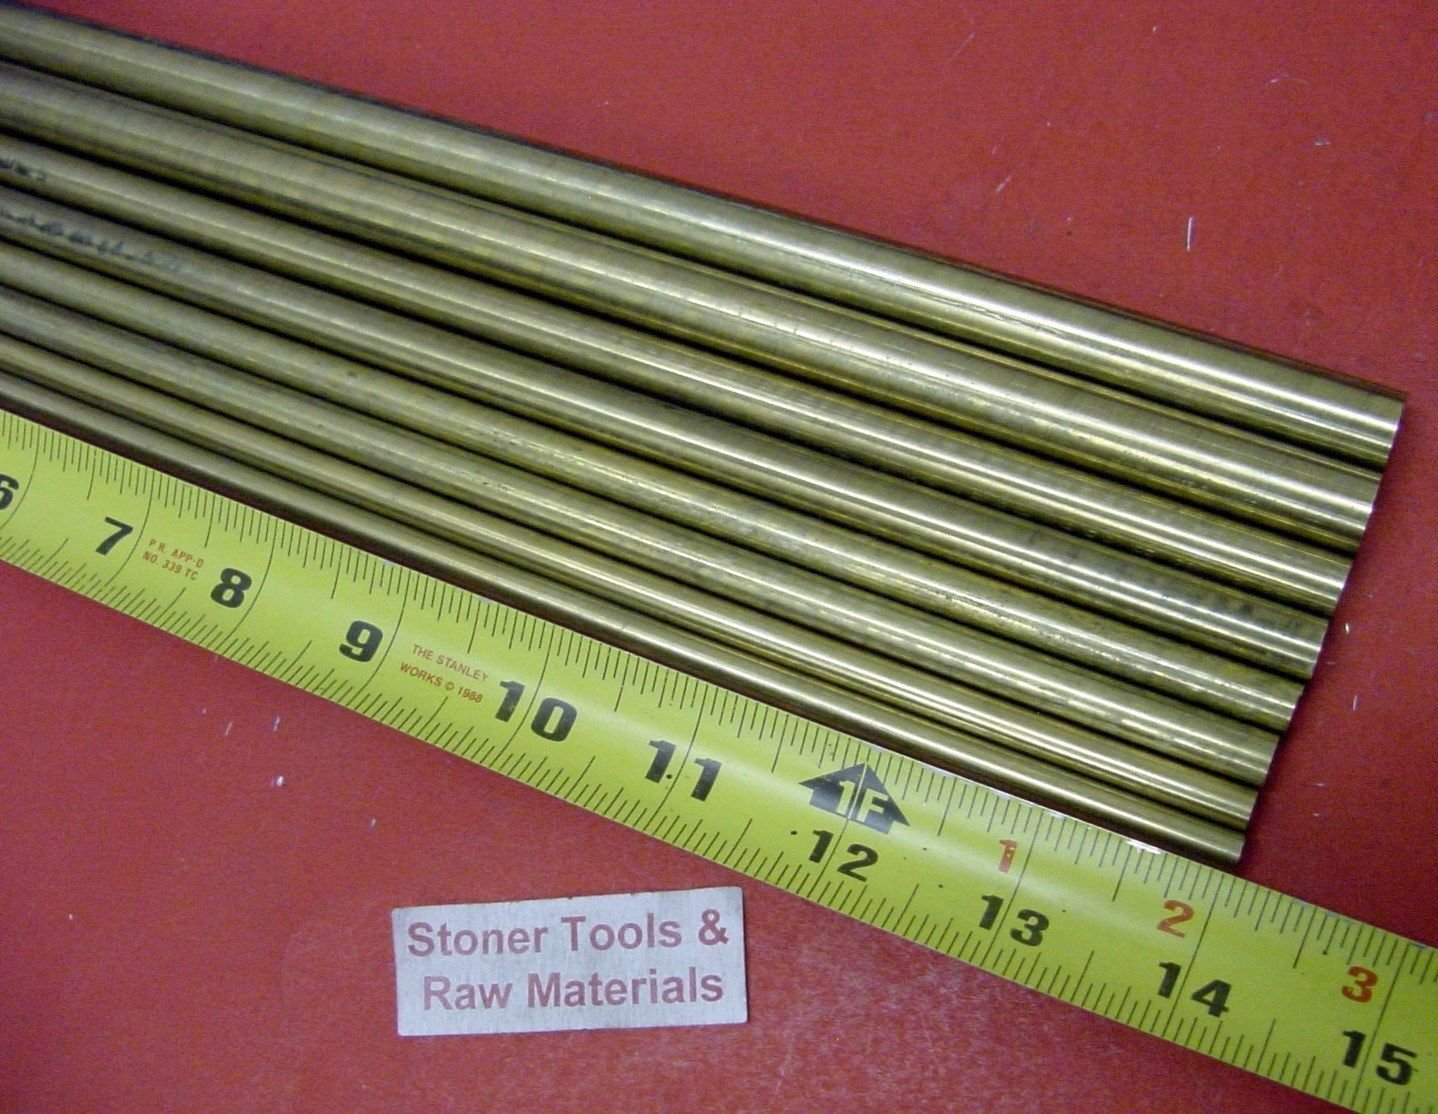 1/4'', 5/16'', 3/8'' & 1/2'' C360 BRASS ROUND 8 Pc ASSORTMENT SOLID ROD 14'' long #3.72 by Stoner Metals